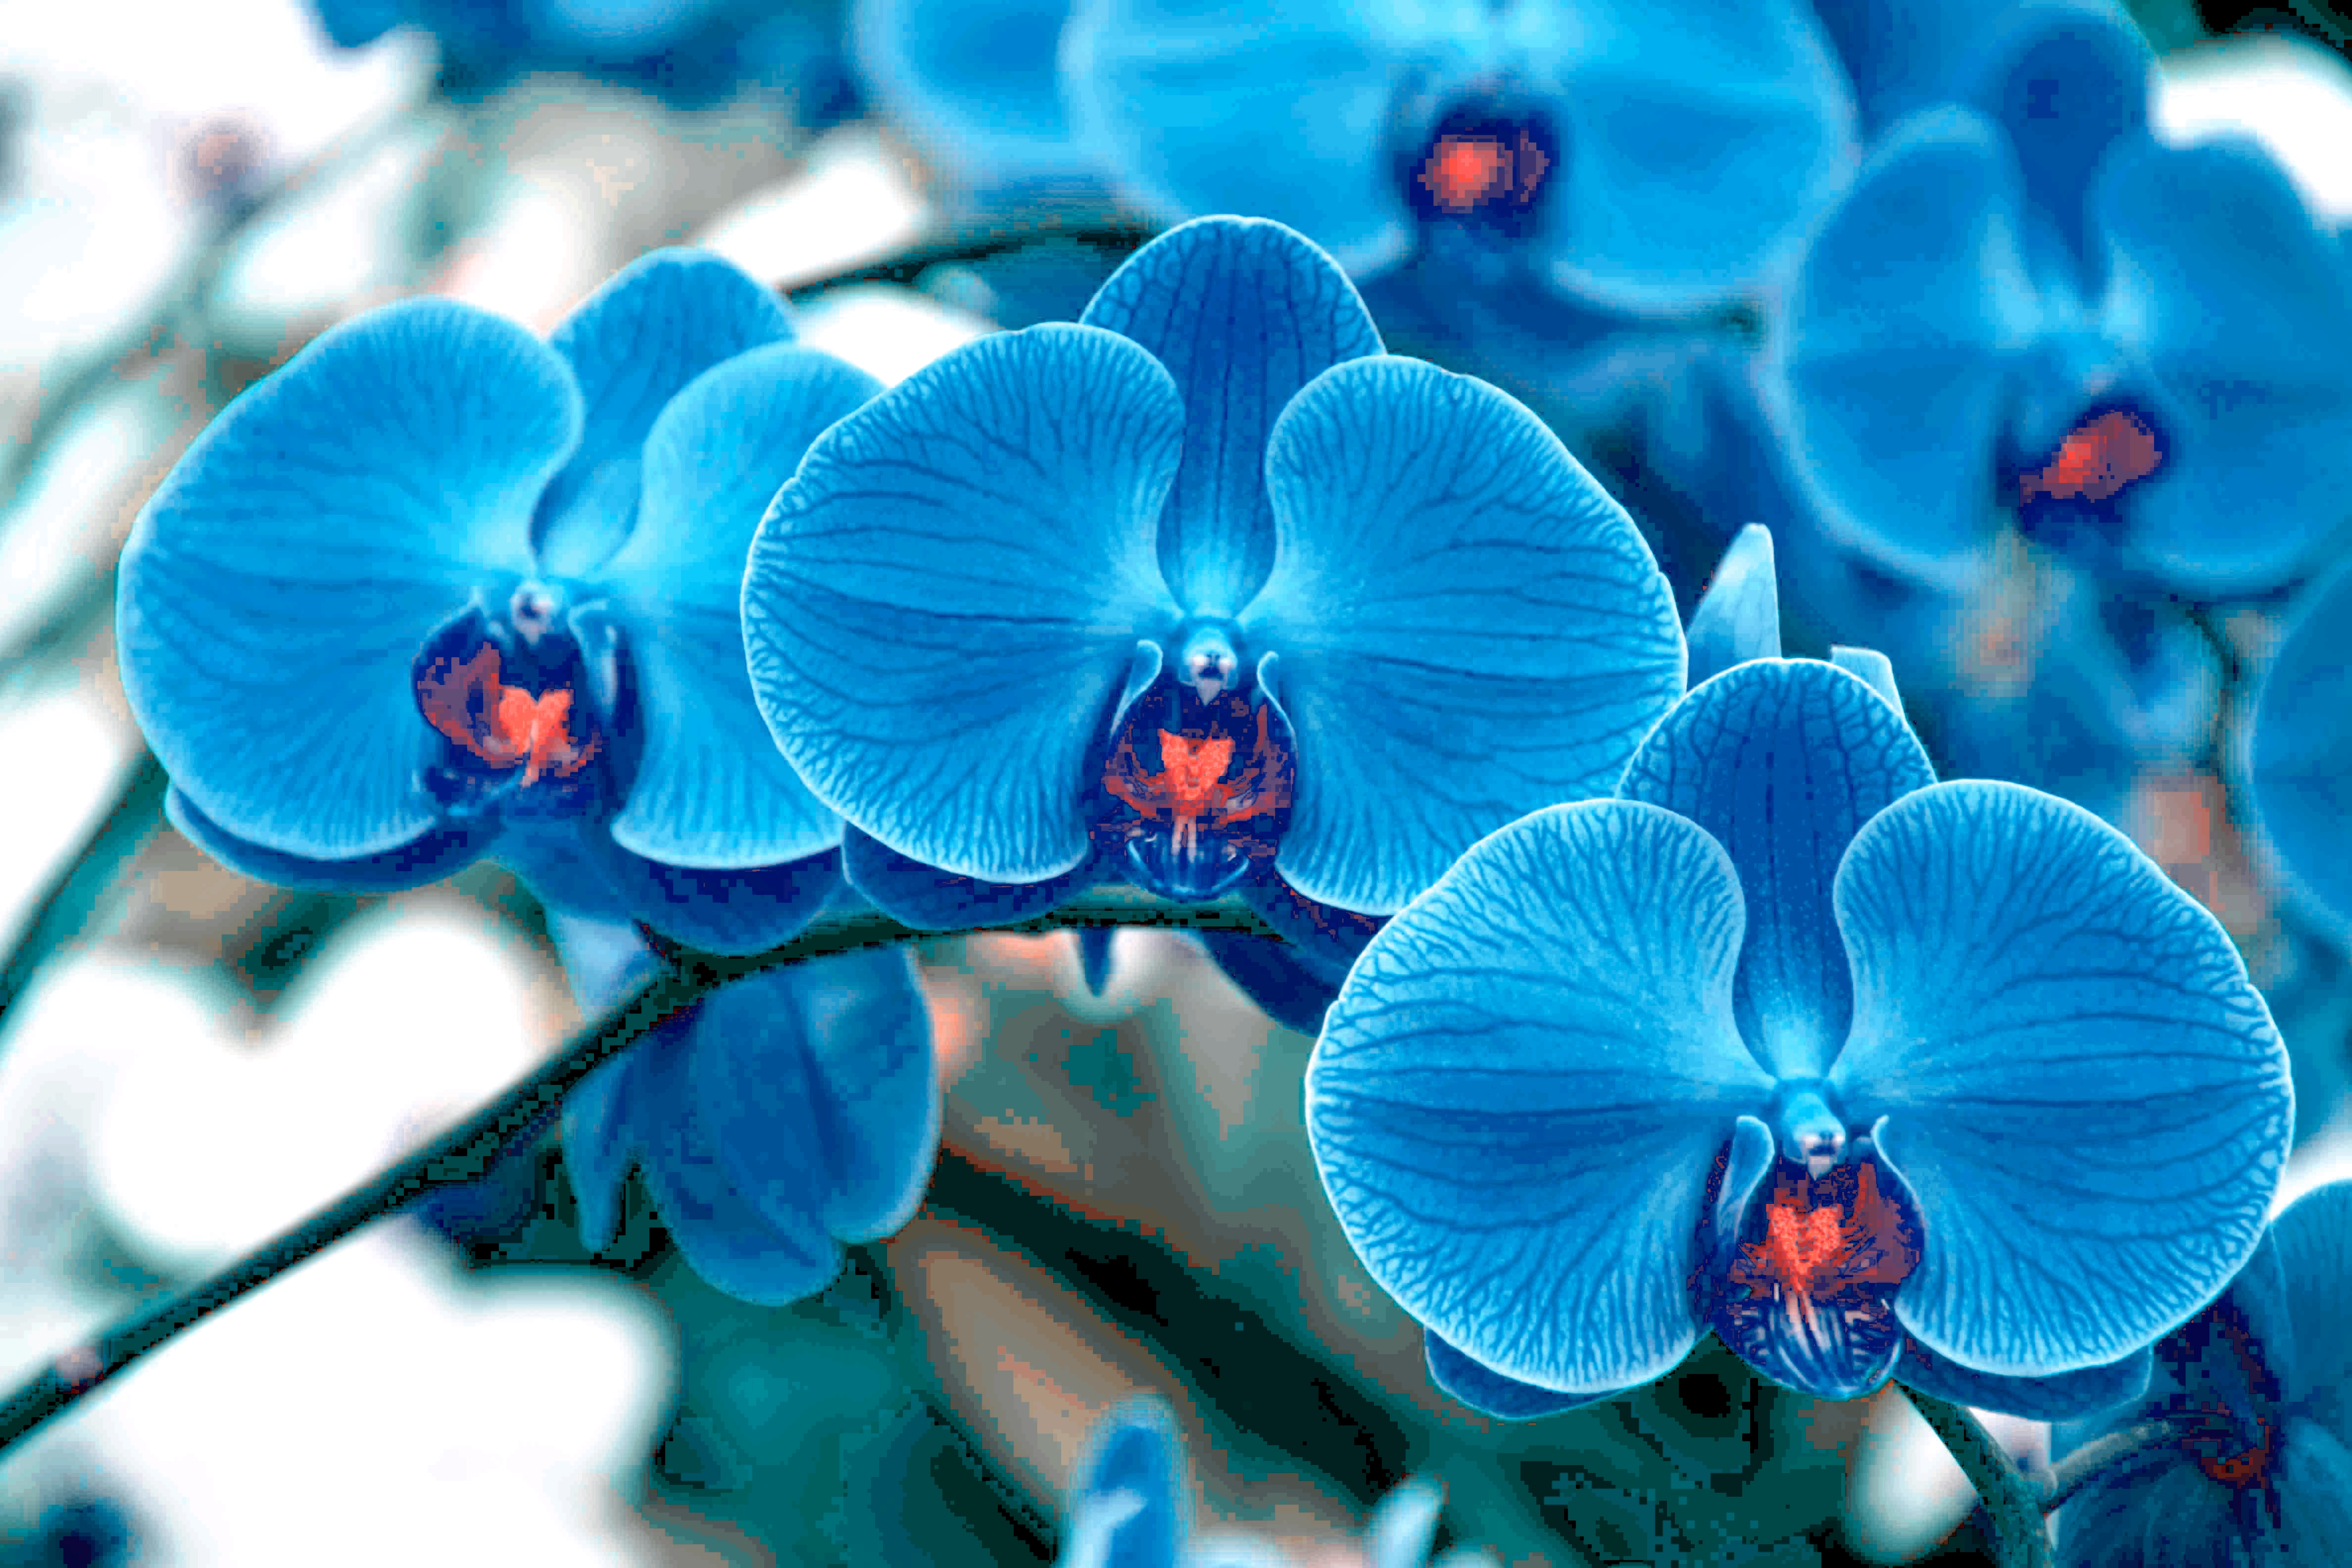 Pictures of blue orchids flowers Alii Flowers - Hawaiian Flowers Fresh Leis Gift Baskets